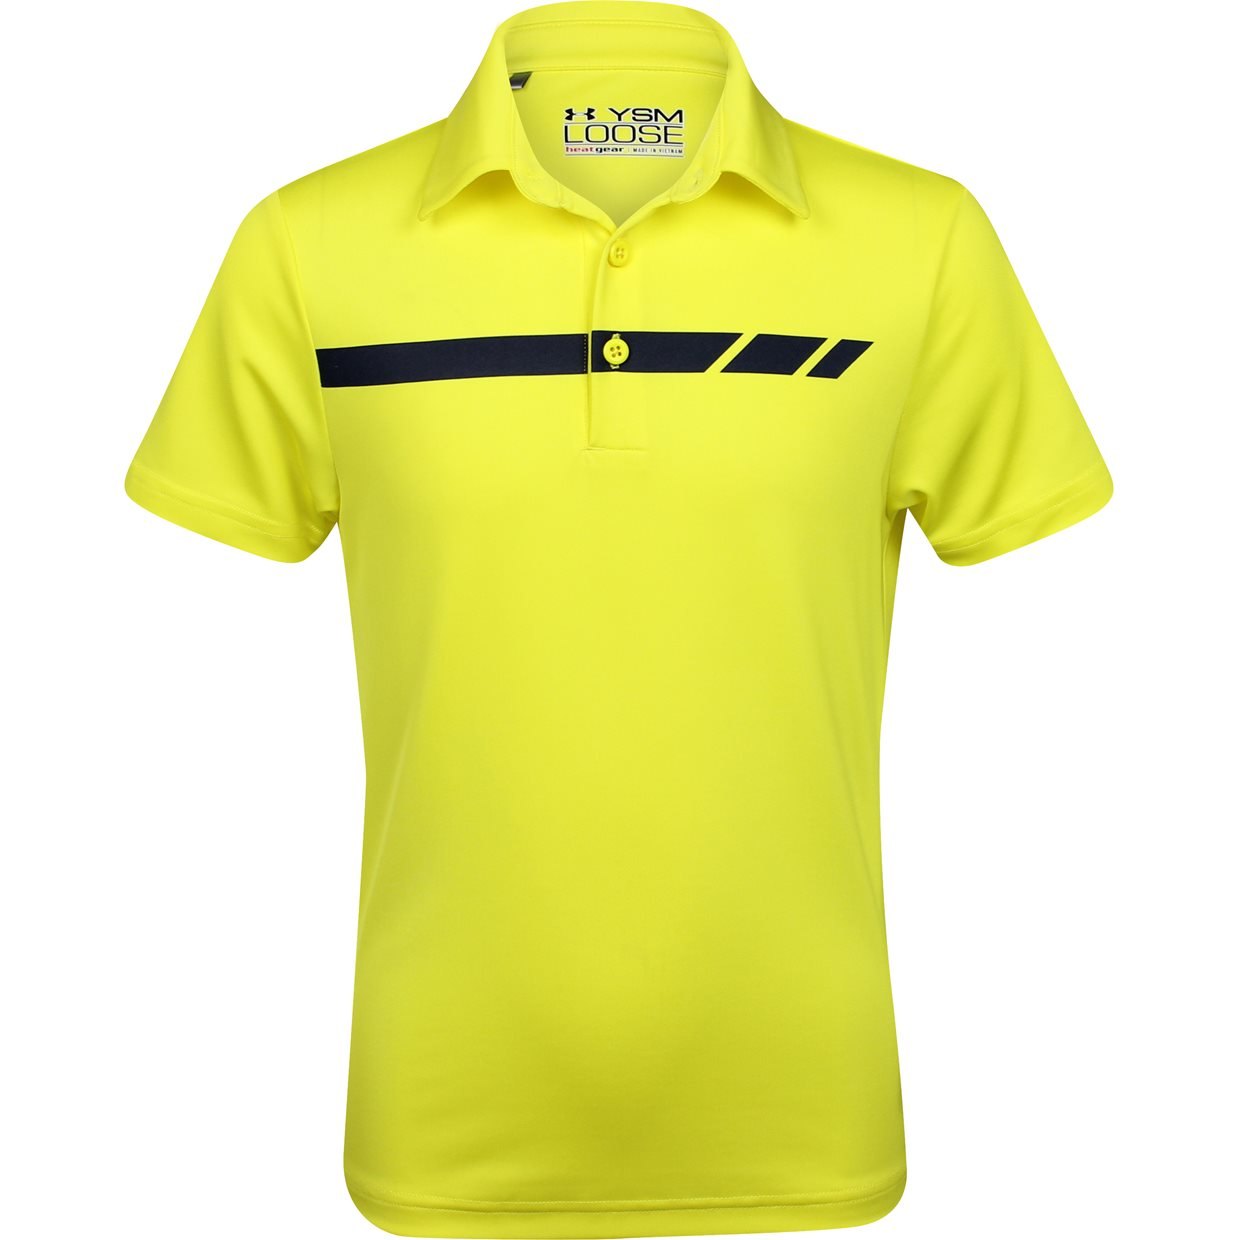 Under armour ua youth condor shirt polo short sleeve apparel for Under armour swim shirt youth